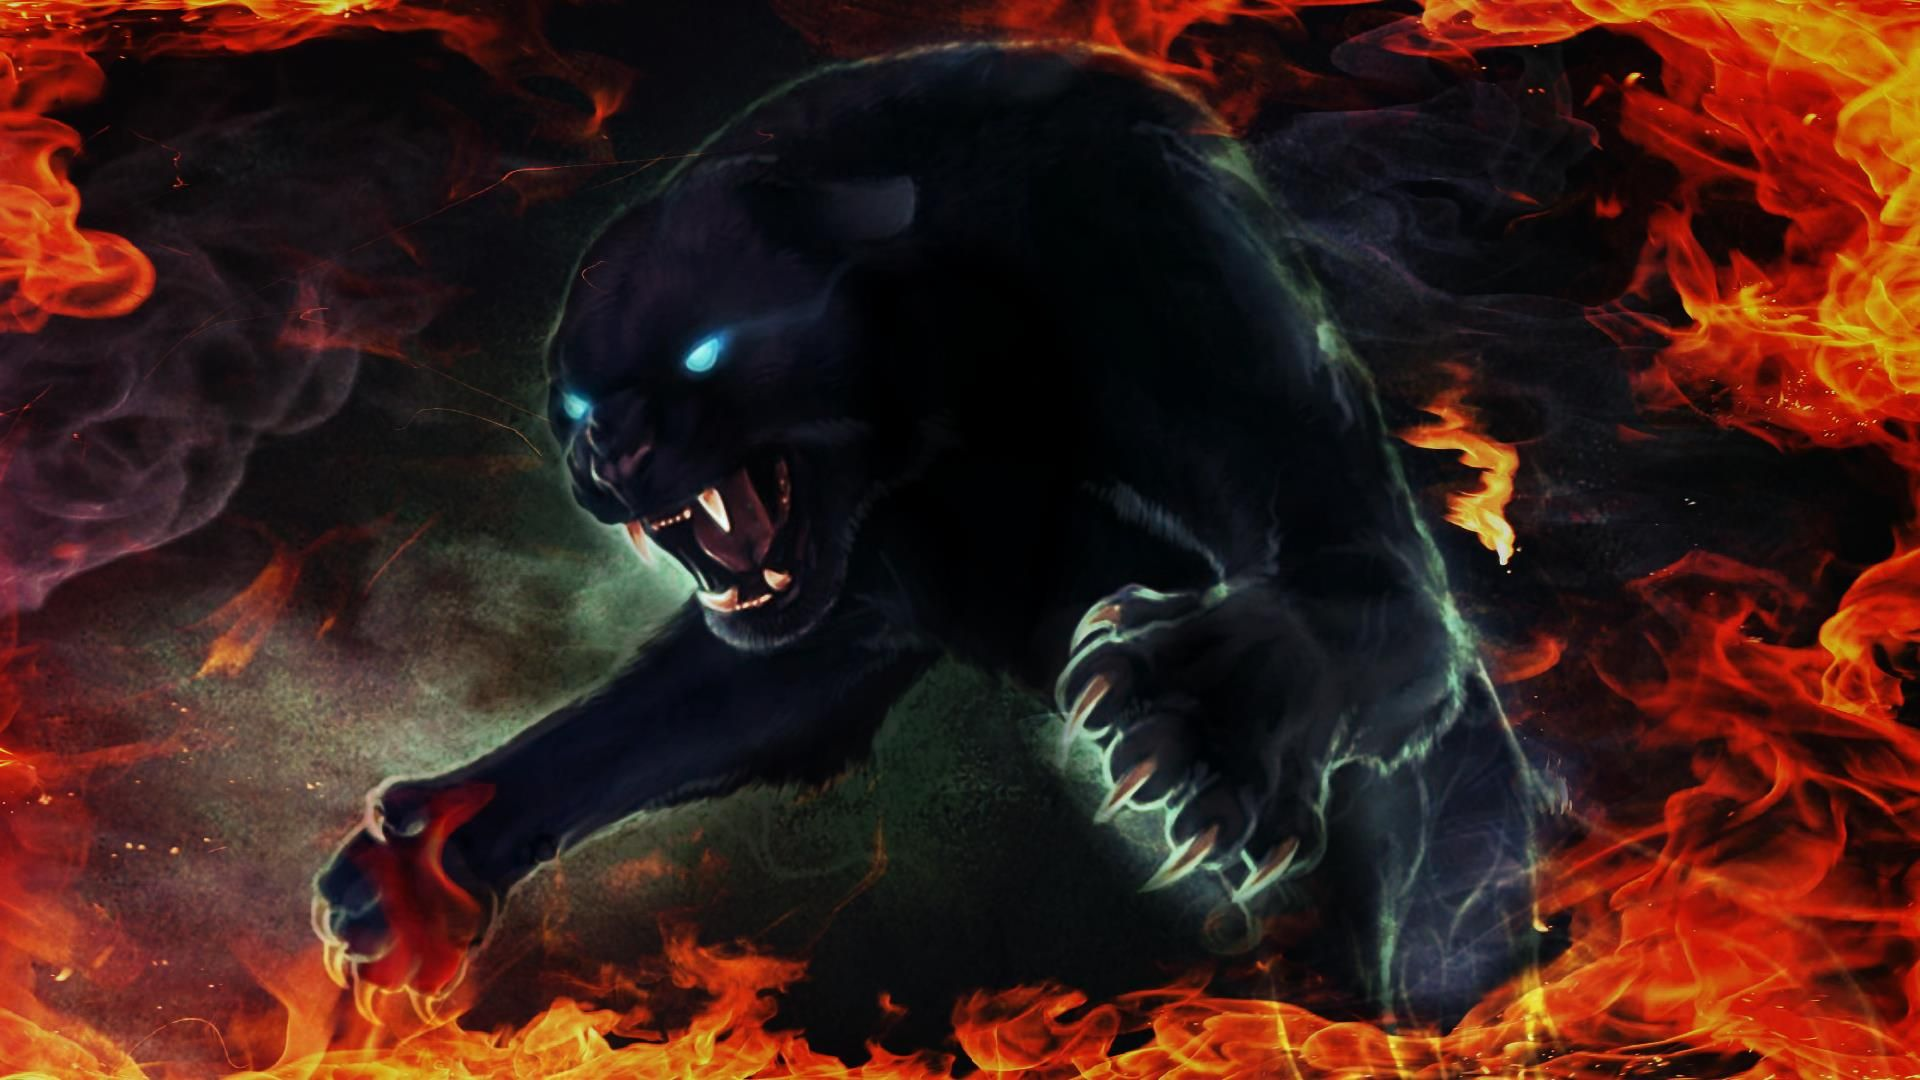 Scary Panther Beautiful Artwork Panther pictures